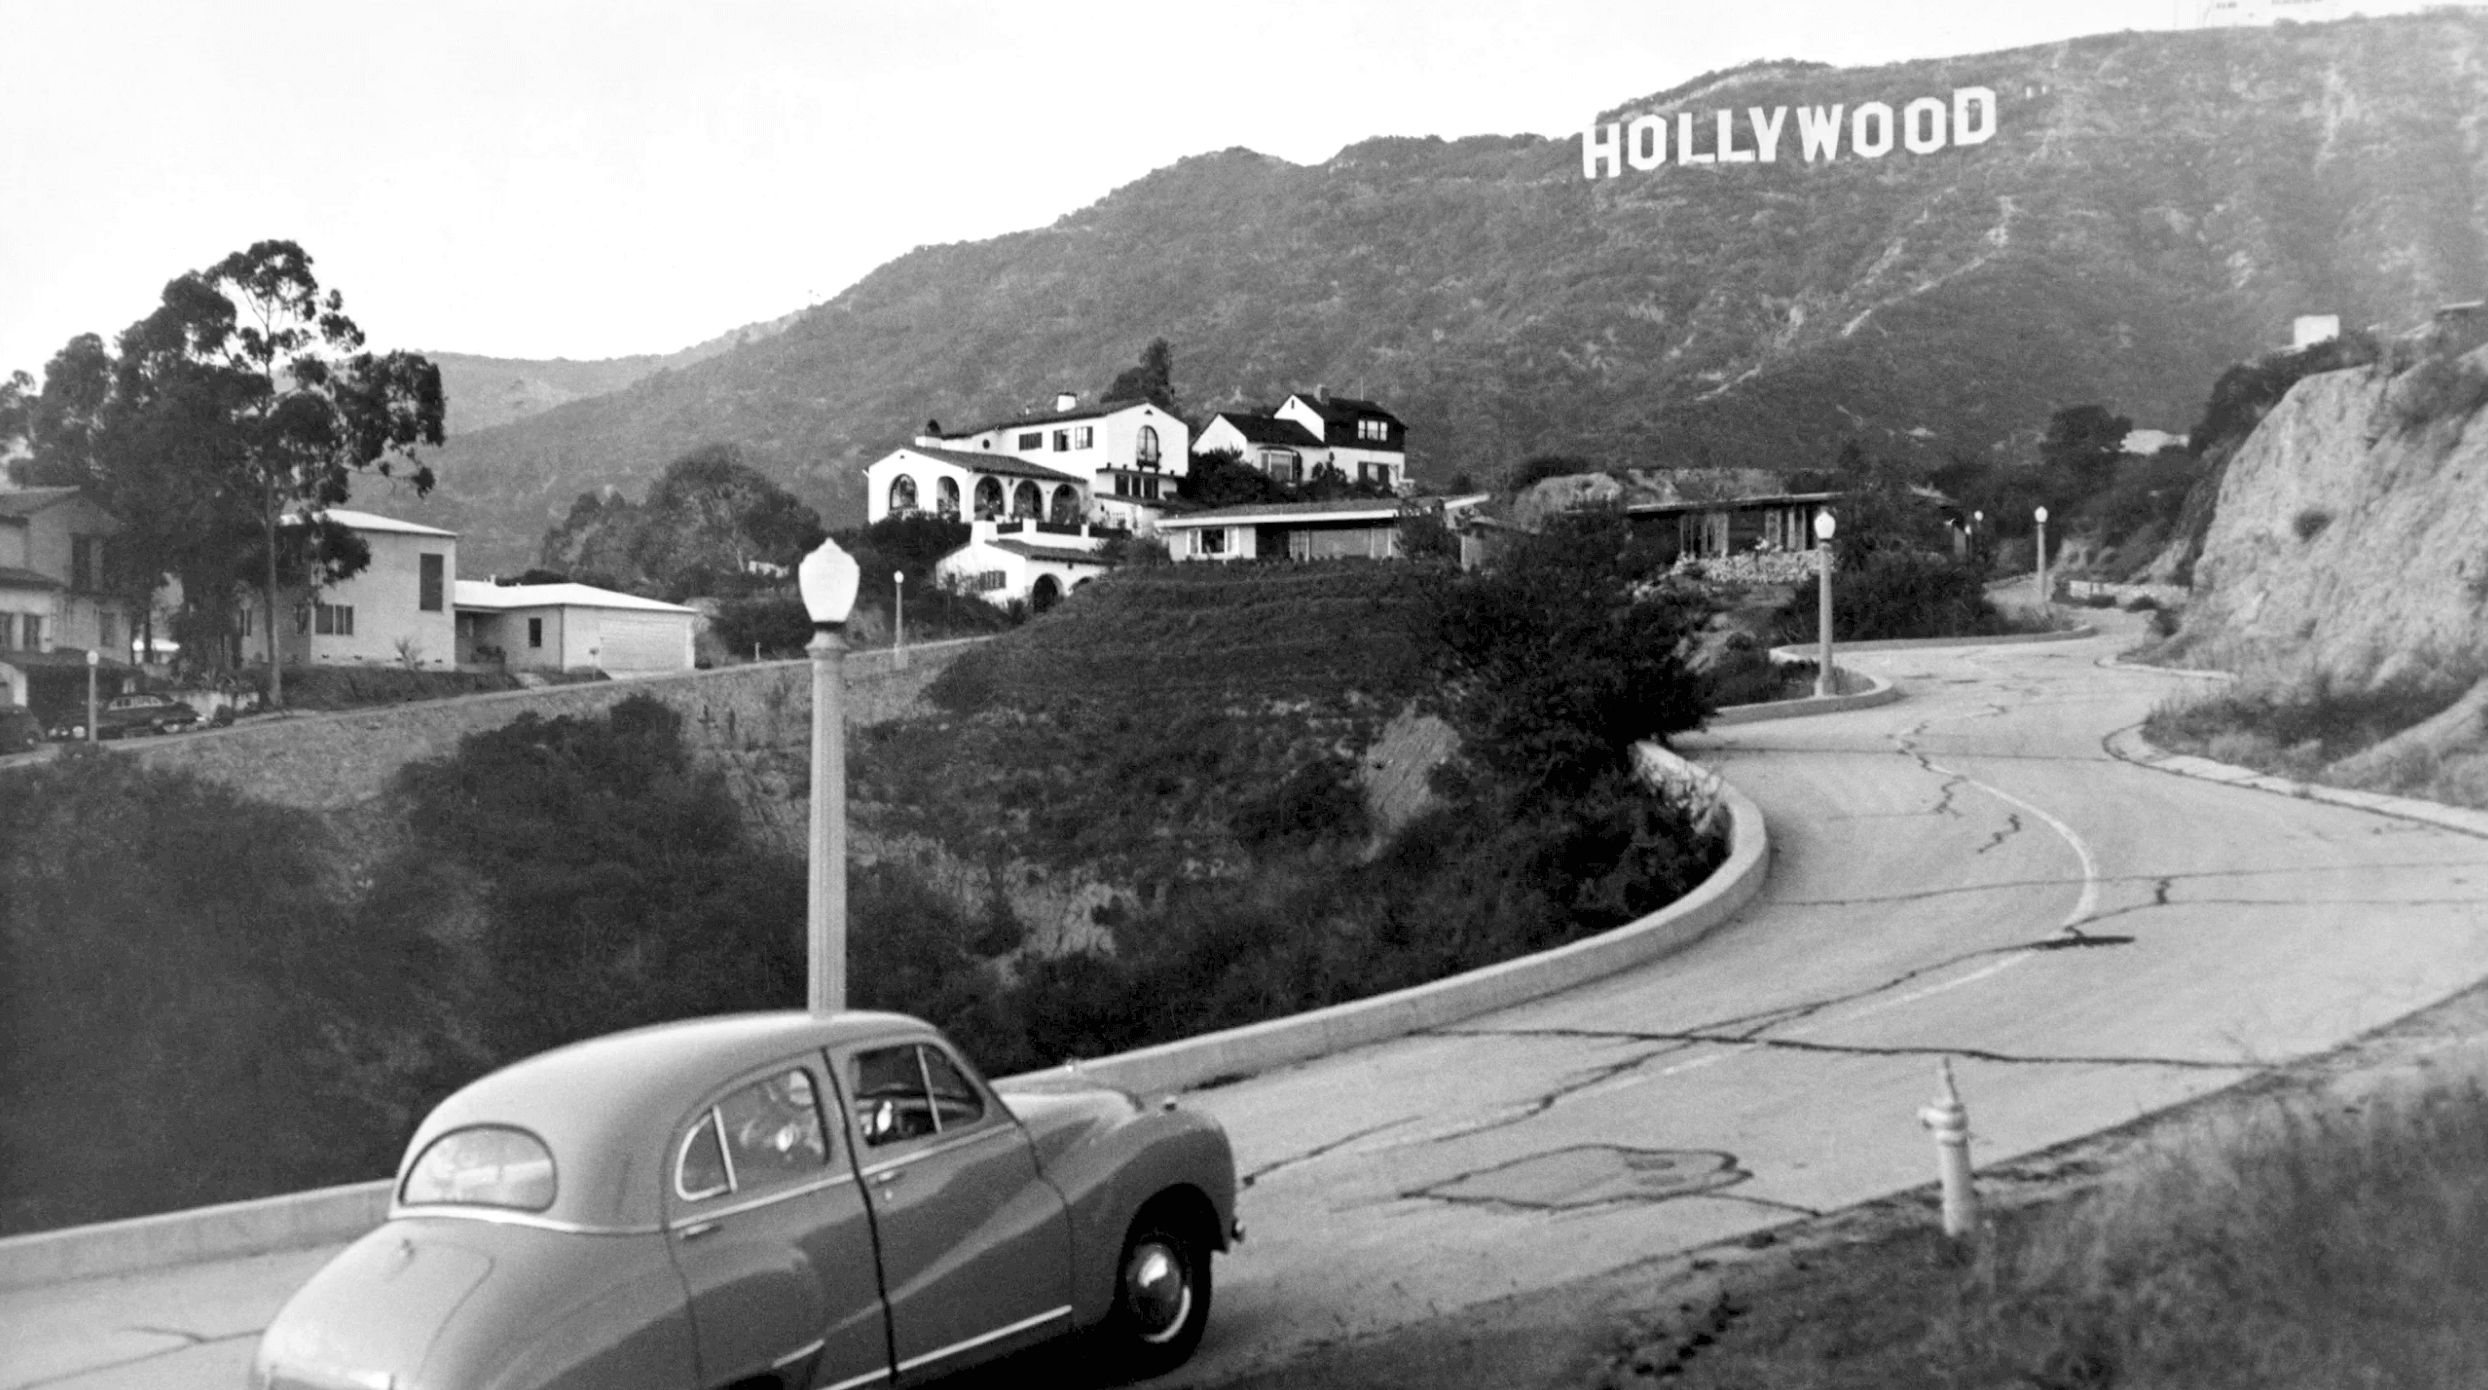 The view of the Hollywood sign from Deronda Drive in 1950, after the LAND  part was removed | Los angeles history, Hollywood sign, Tourist attraction